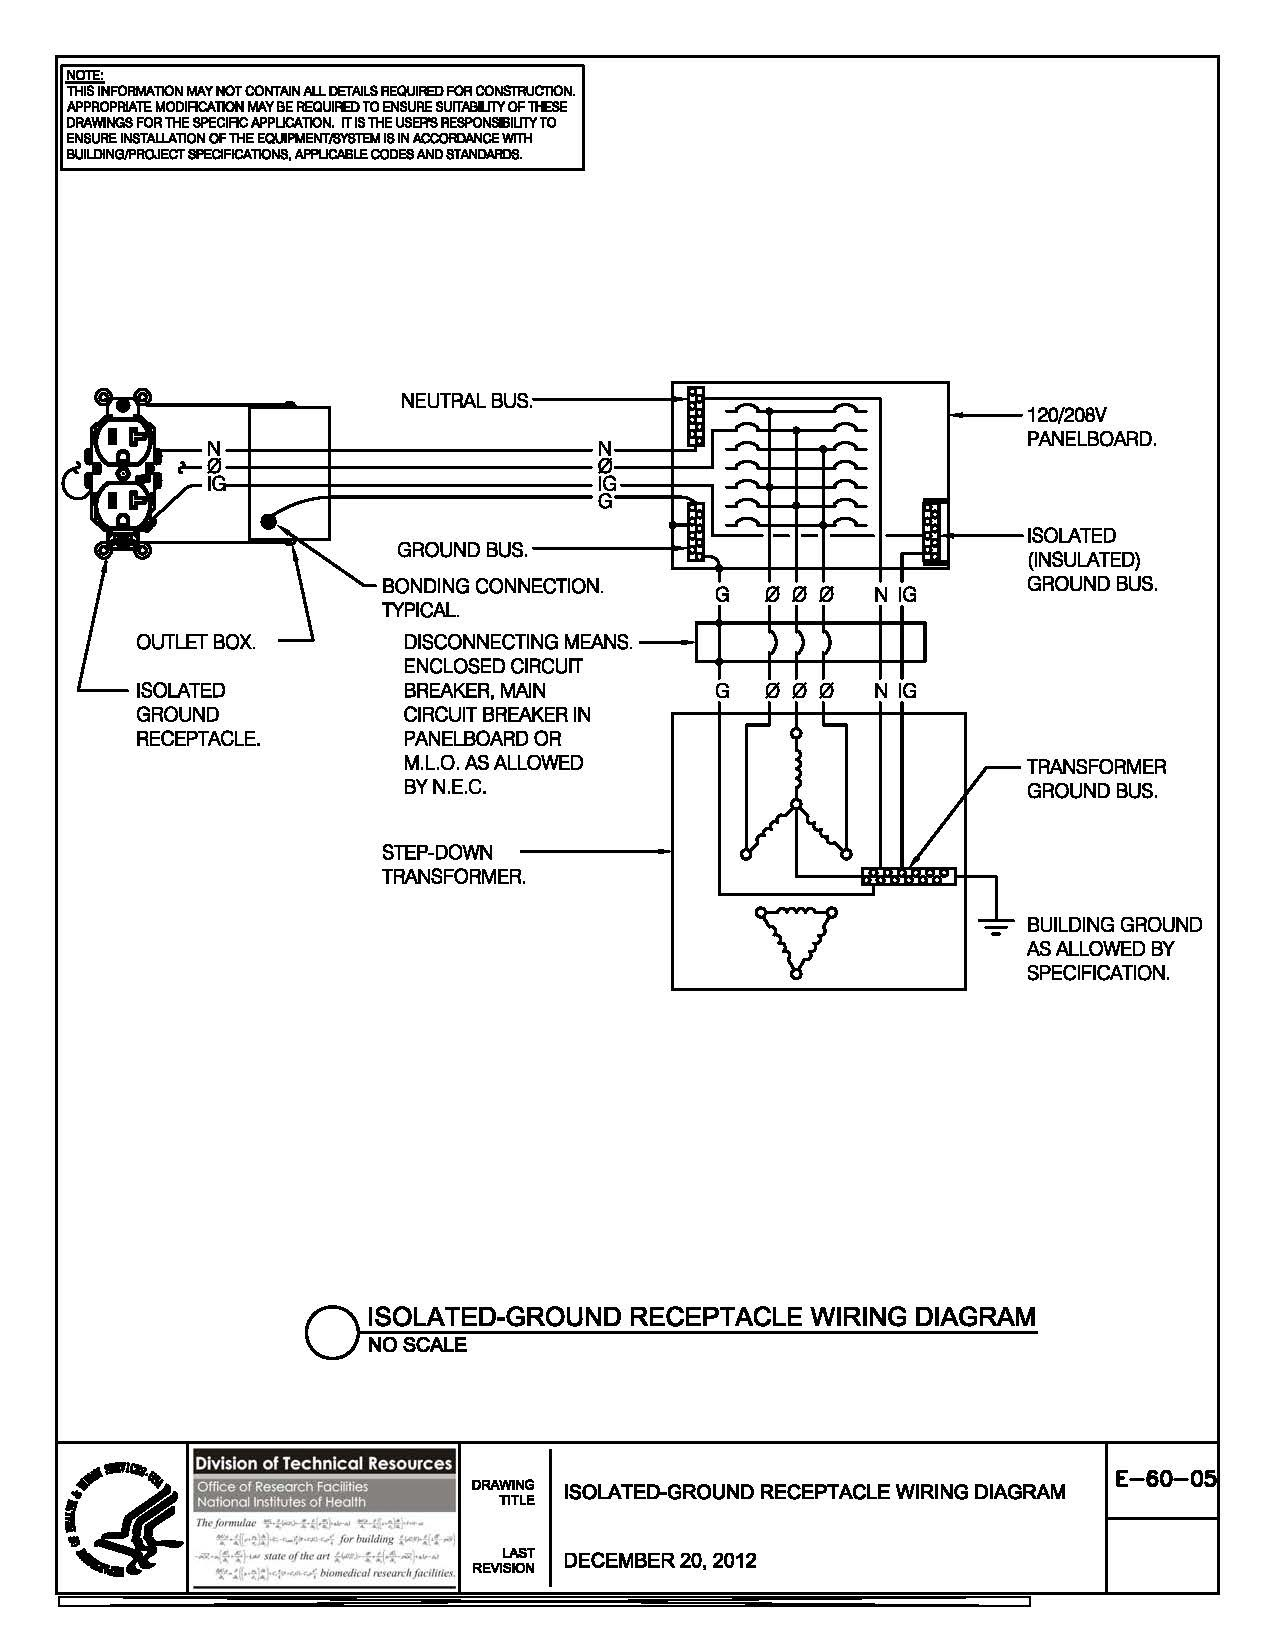 fire smoke damper wiring diagram Download-Wiring Diagram for Gas Fireplace Blower Save Fire Smoke Damper Wiring Diagram Luxury How to Make 17-e